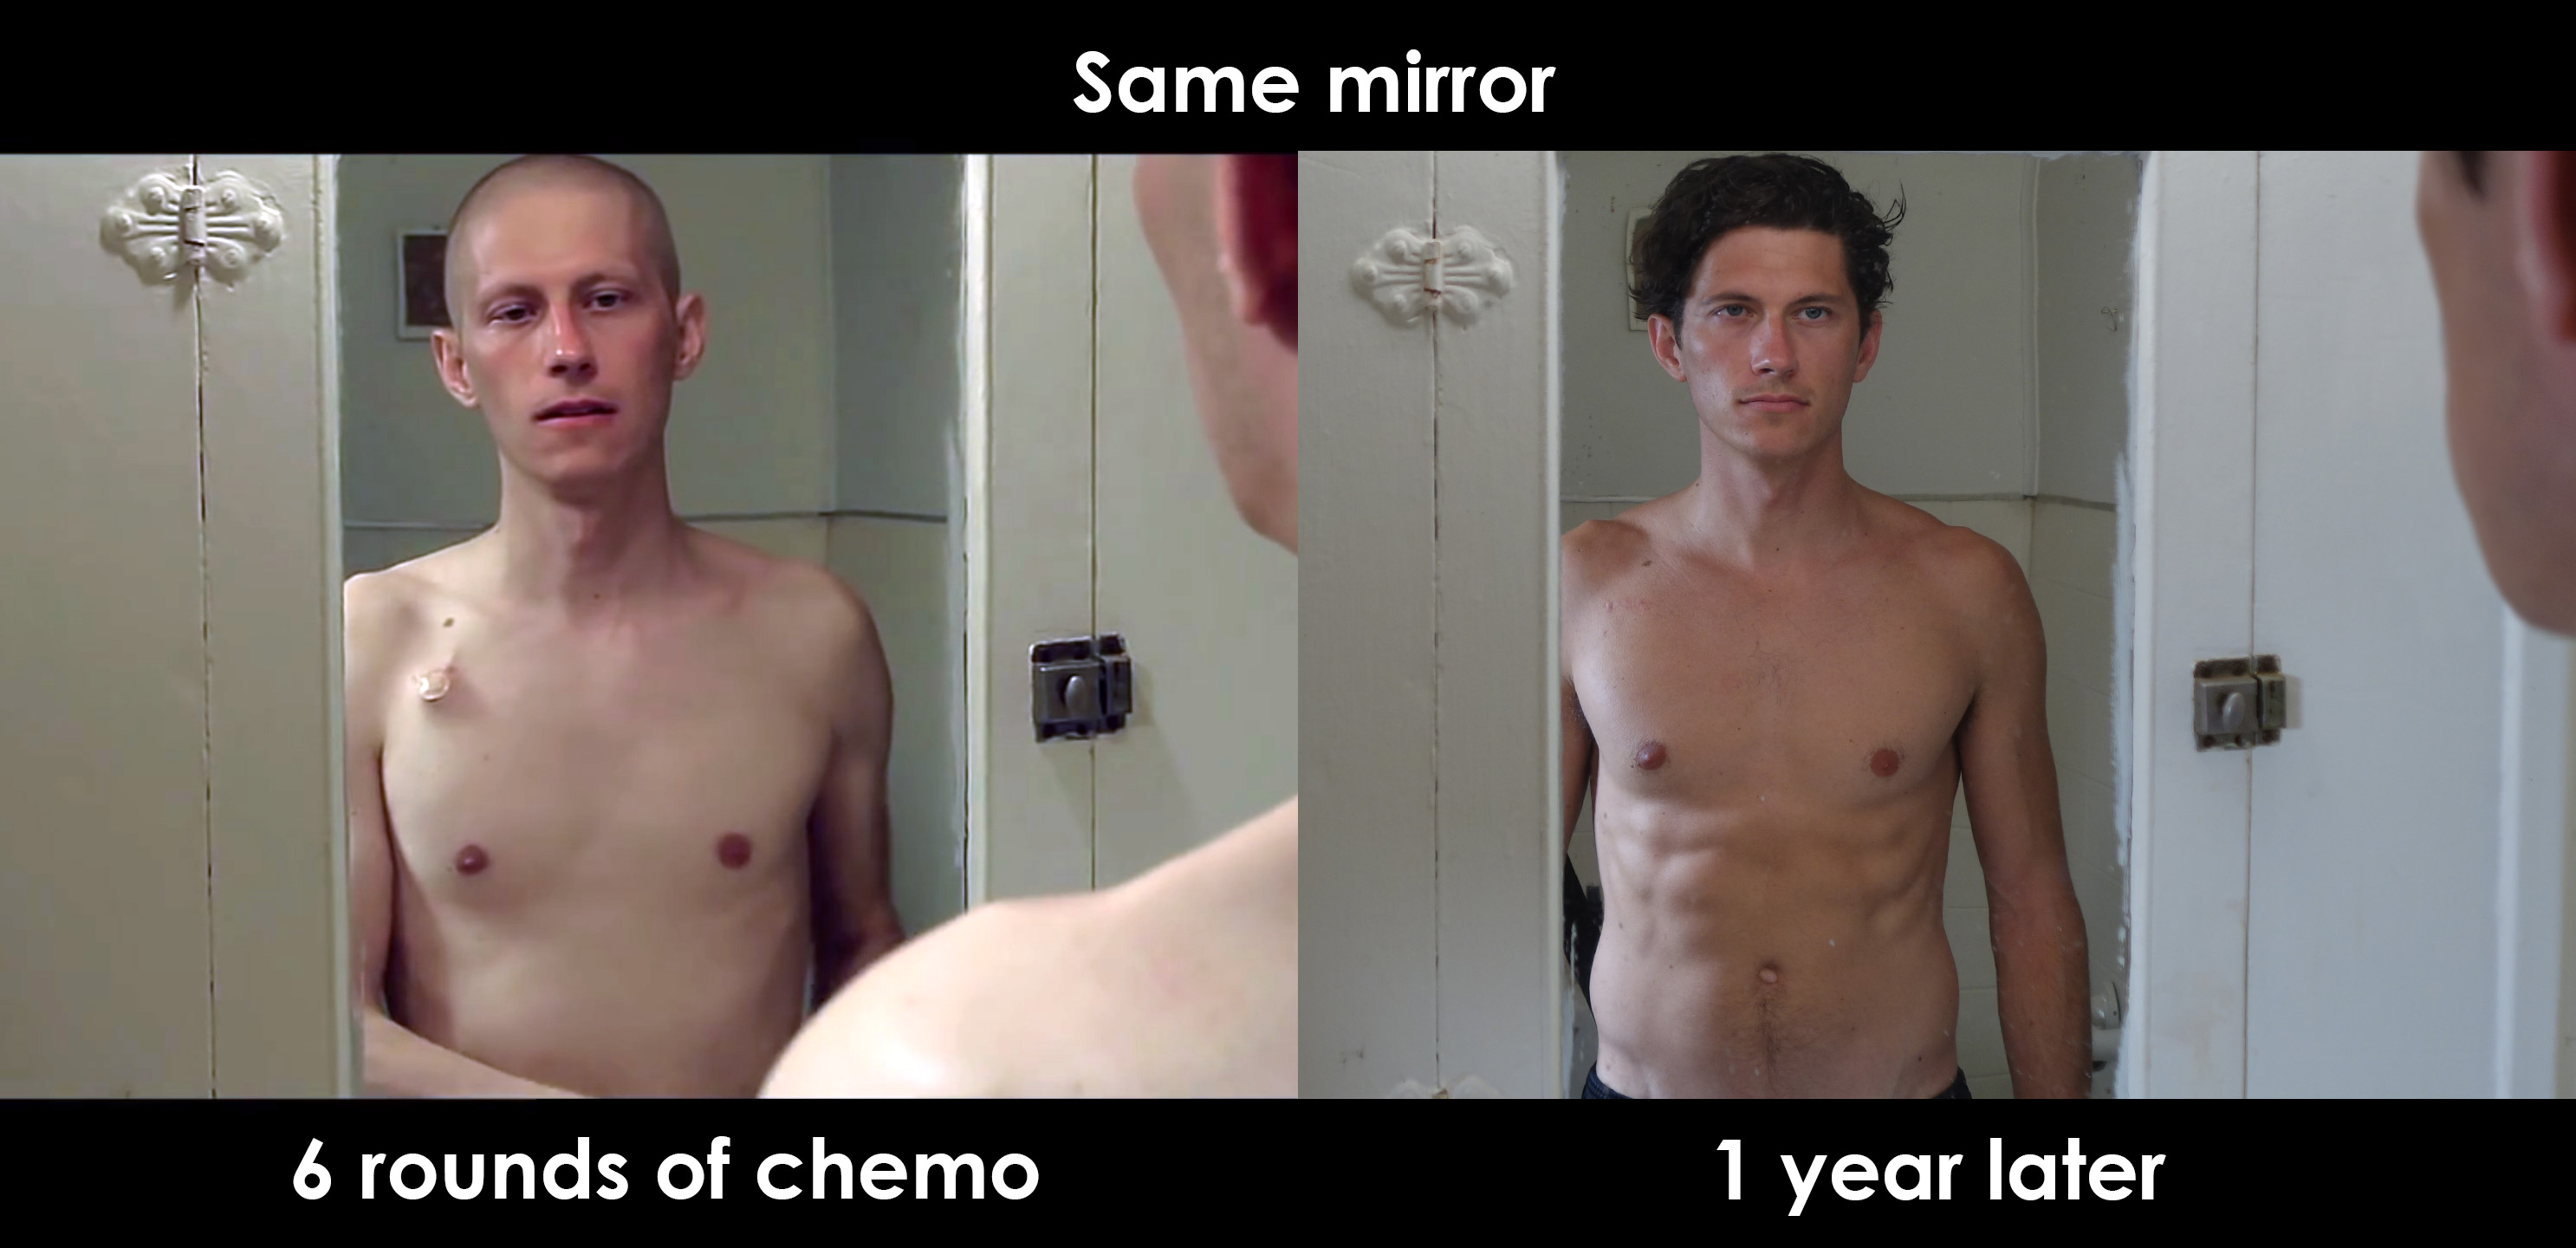 Exercise and Life After Chemo